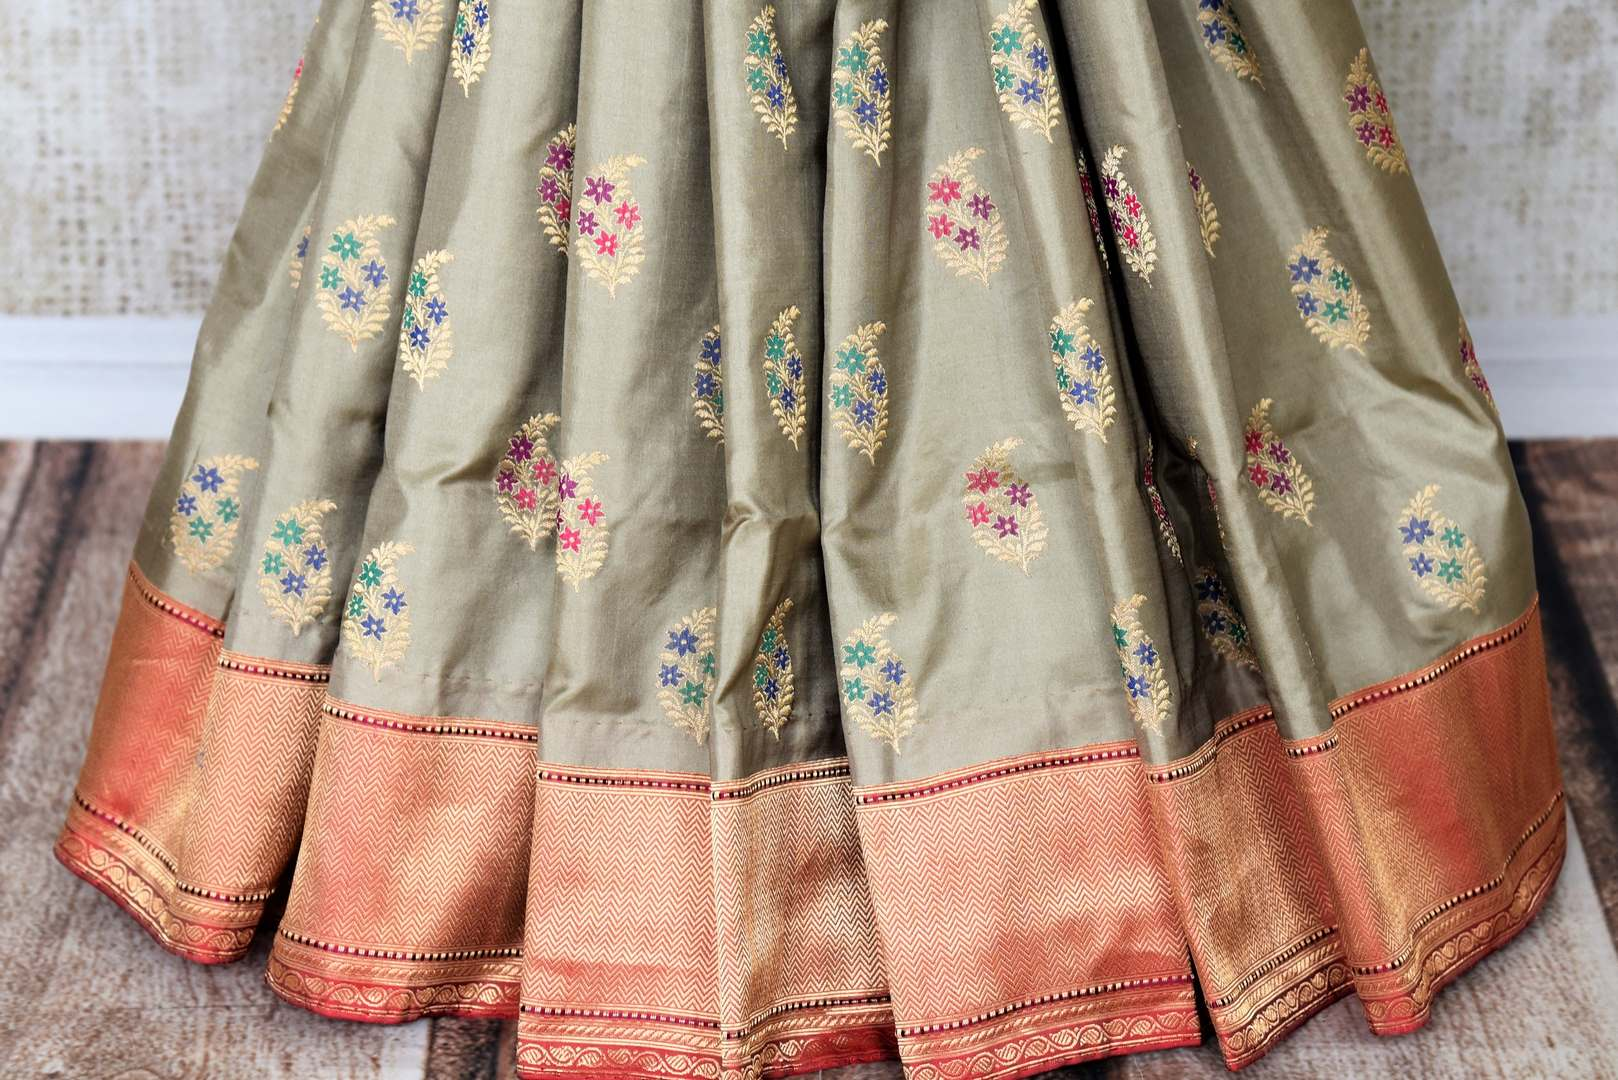 Escalate debonair lady in you with our exquisitely designer grey banarsi silk saree. Style this sari with a red buta work blouse complimented with heavy red pallu to up your style quotient. Shop such designer printed saree, embroidered sari, kanjeevaram silk sari online or visit the Pure Elegance store in USA. -pleats